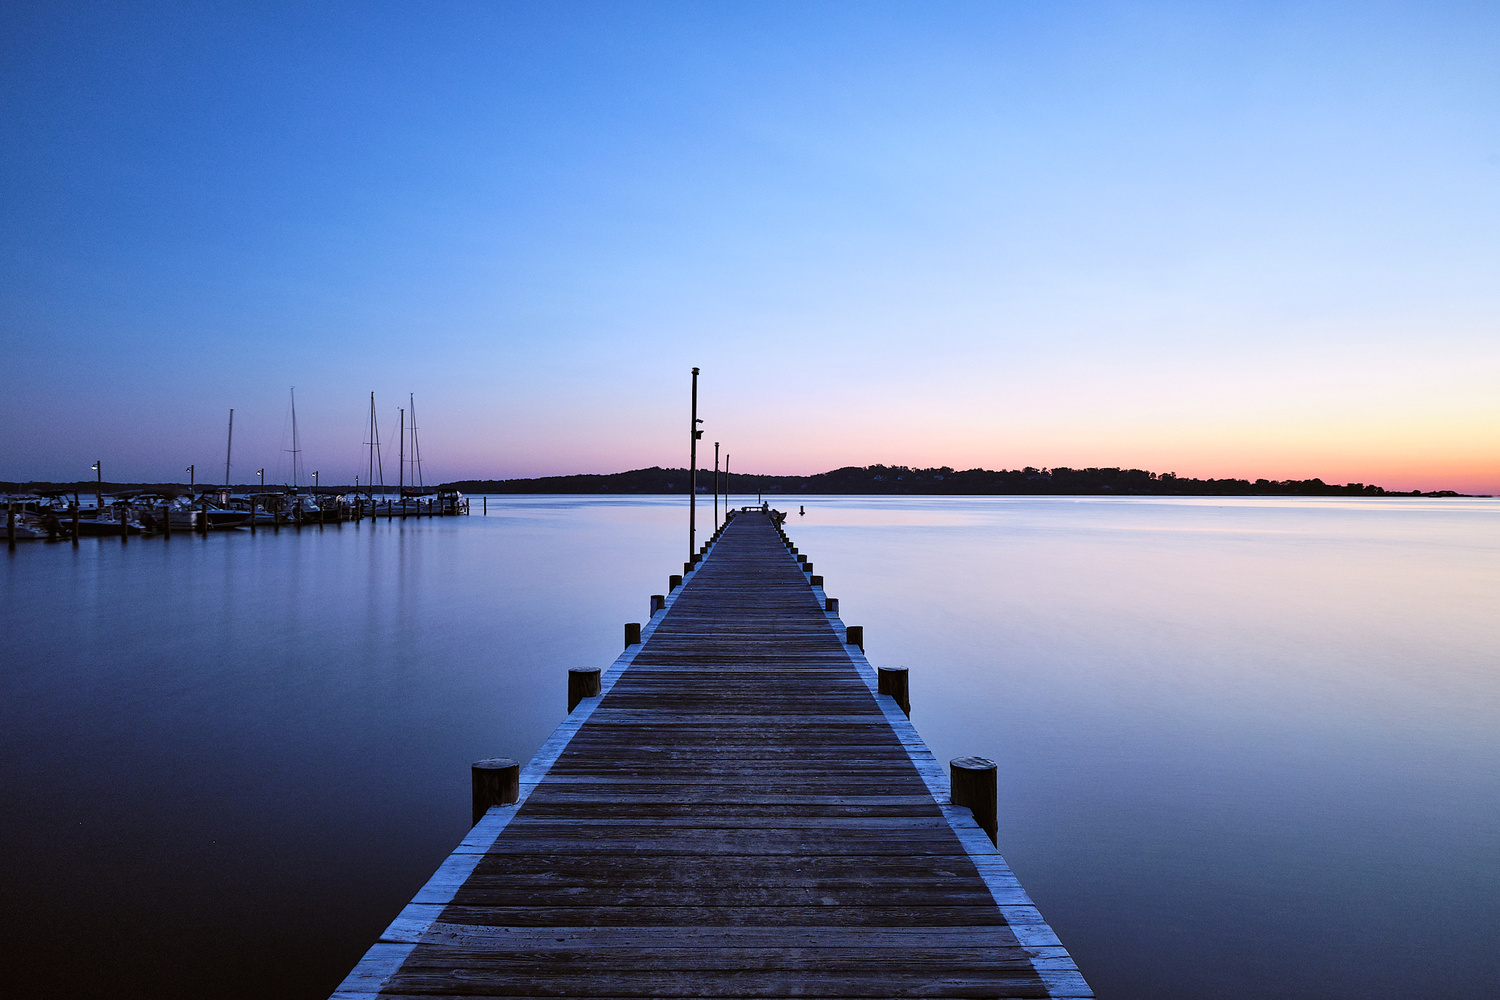 Dock of the Bay by Christopher Elkins